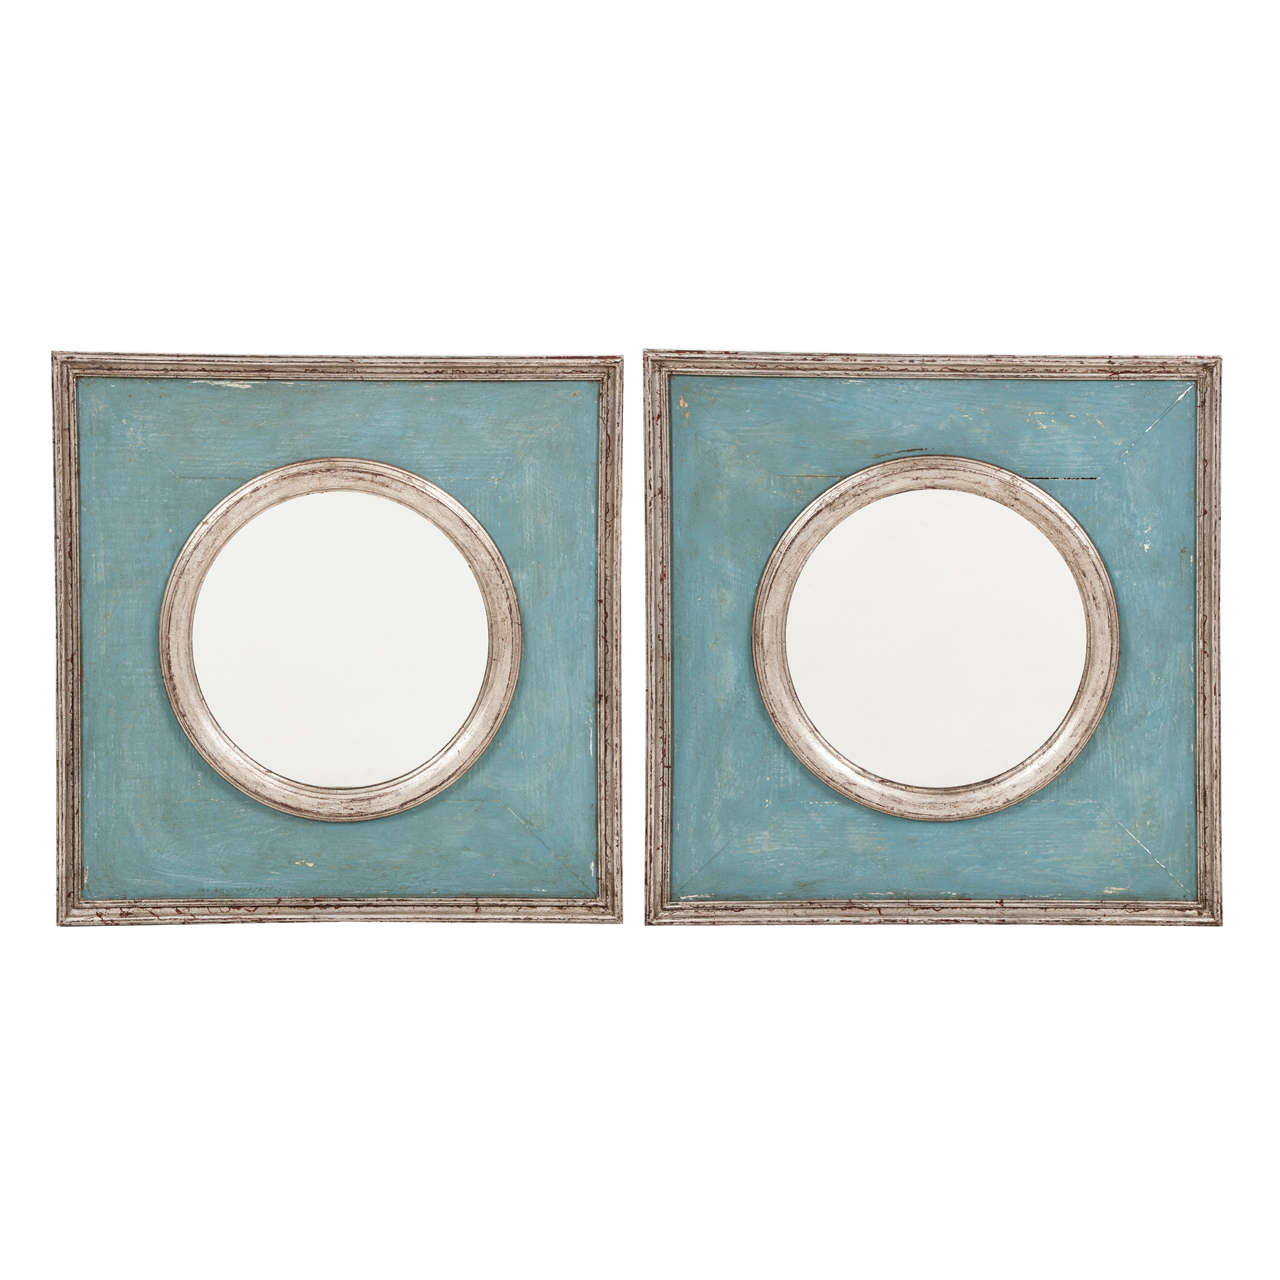 Pair Of Painted And Silvered French Mirrors At 1stdibs